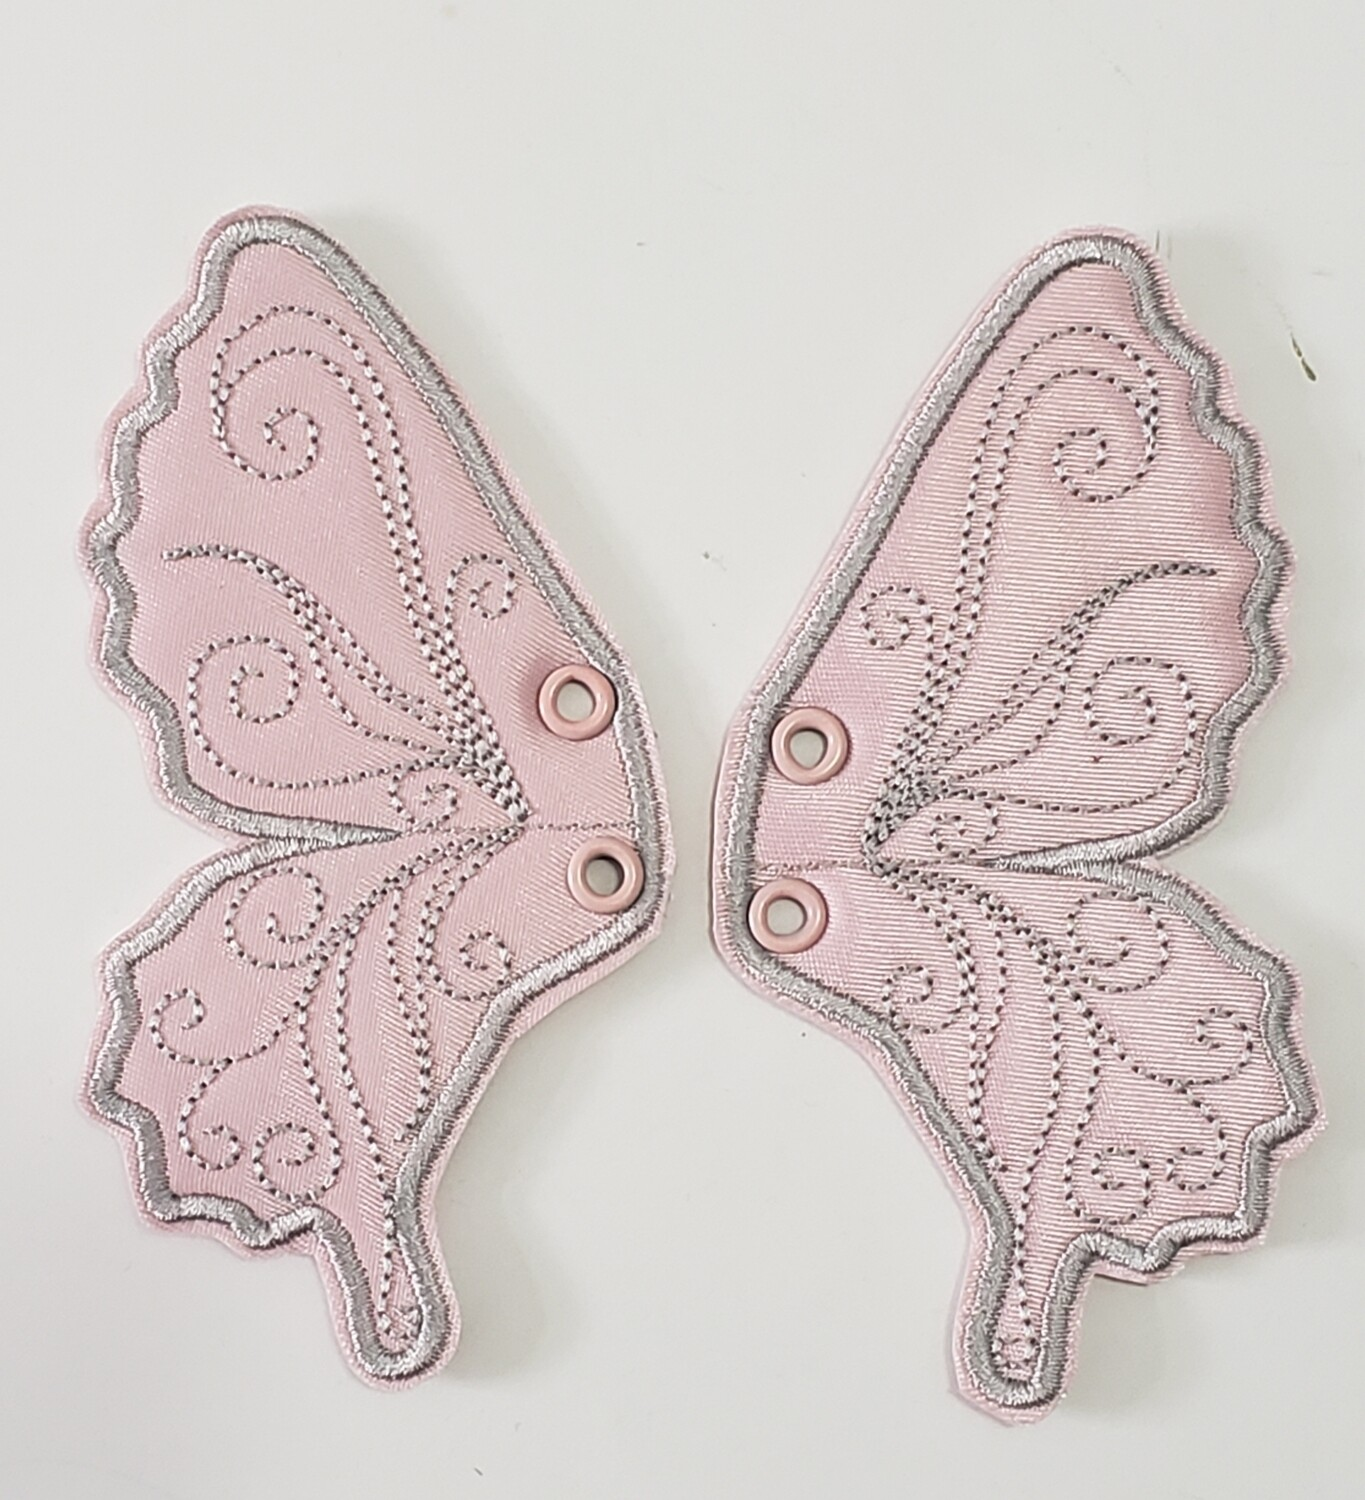 Butterfly 5 inch shoe wings in satin plain fabric